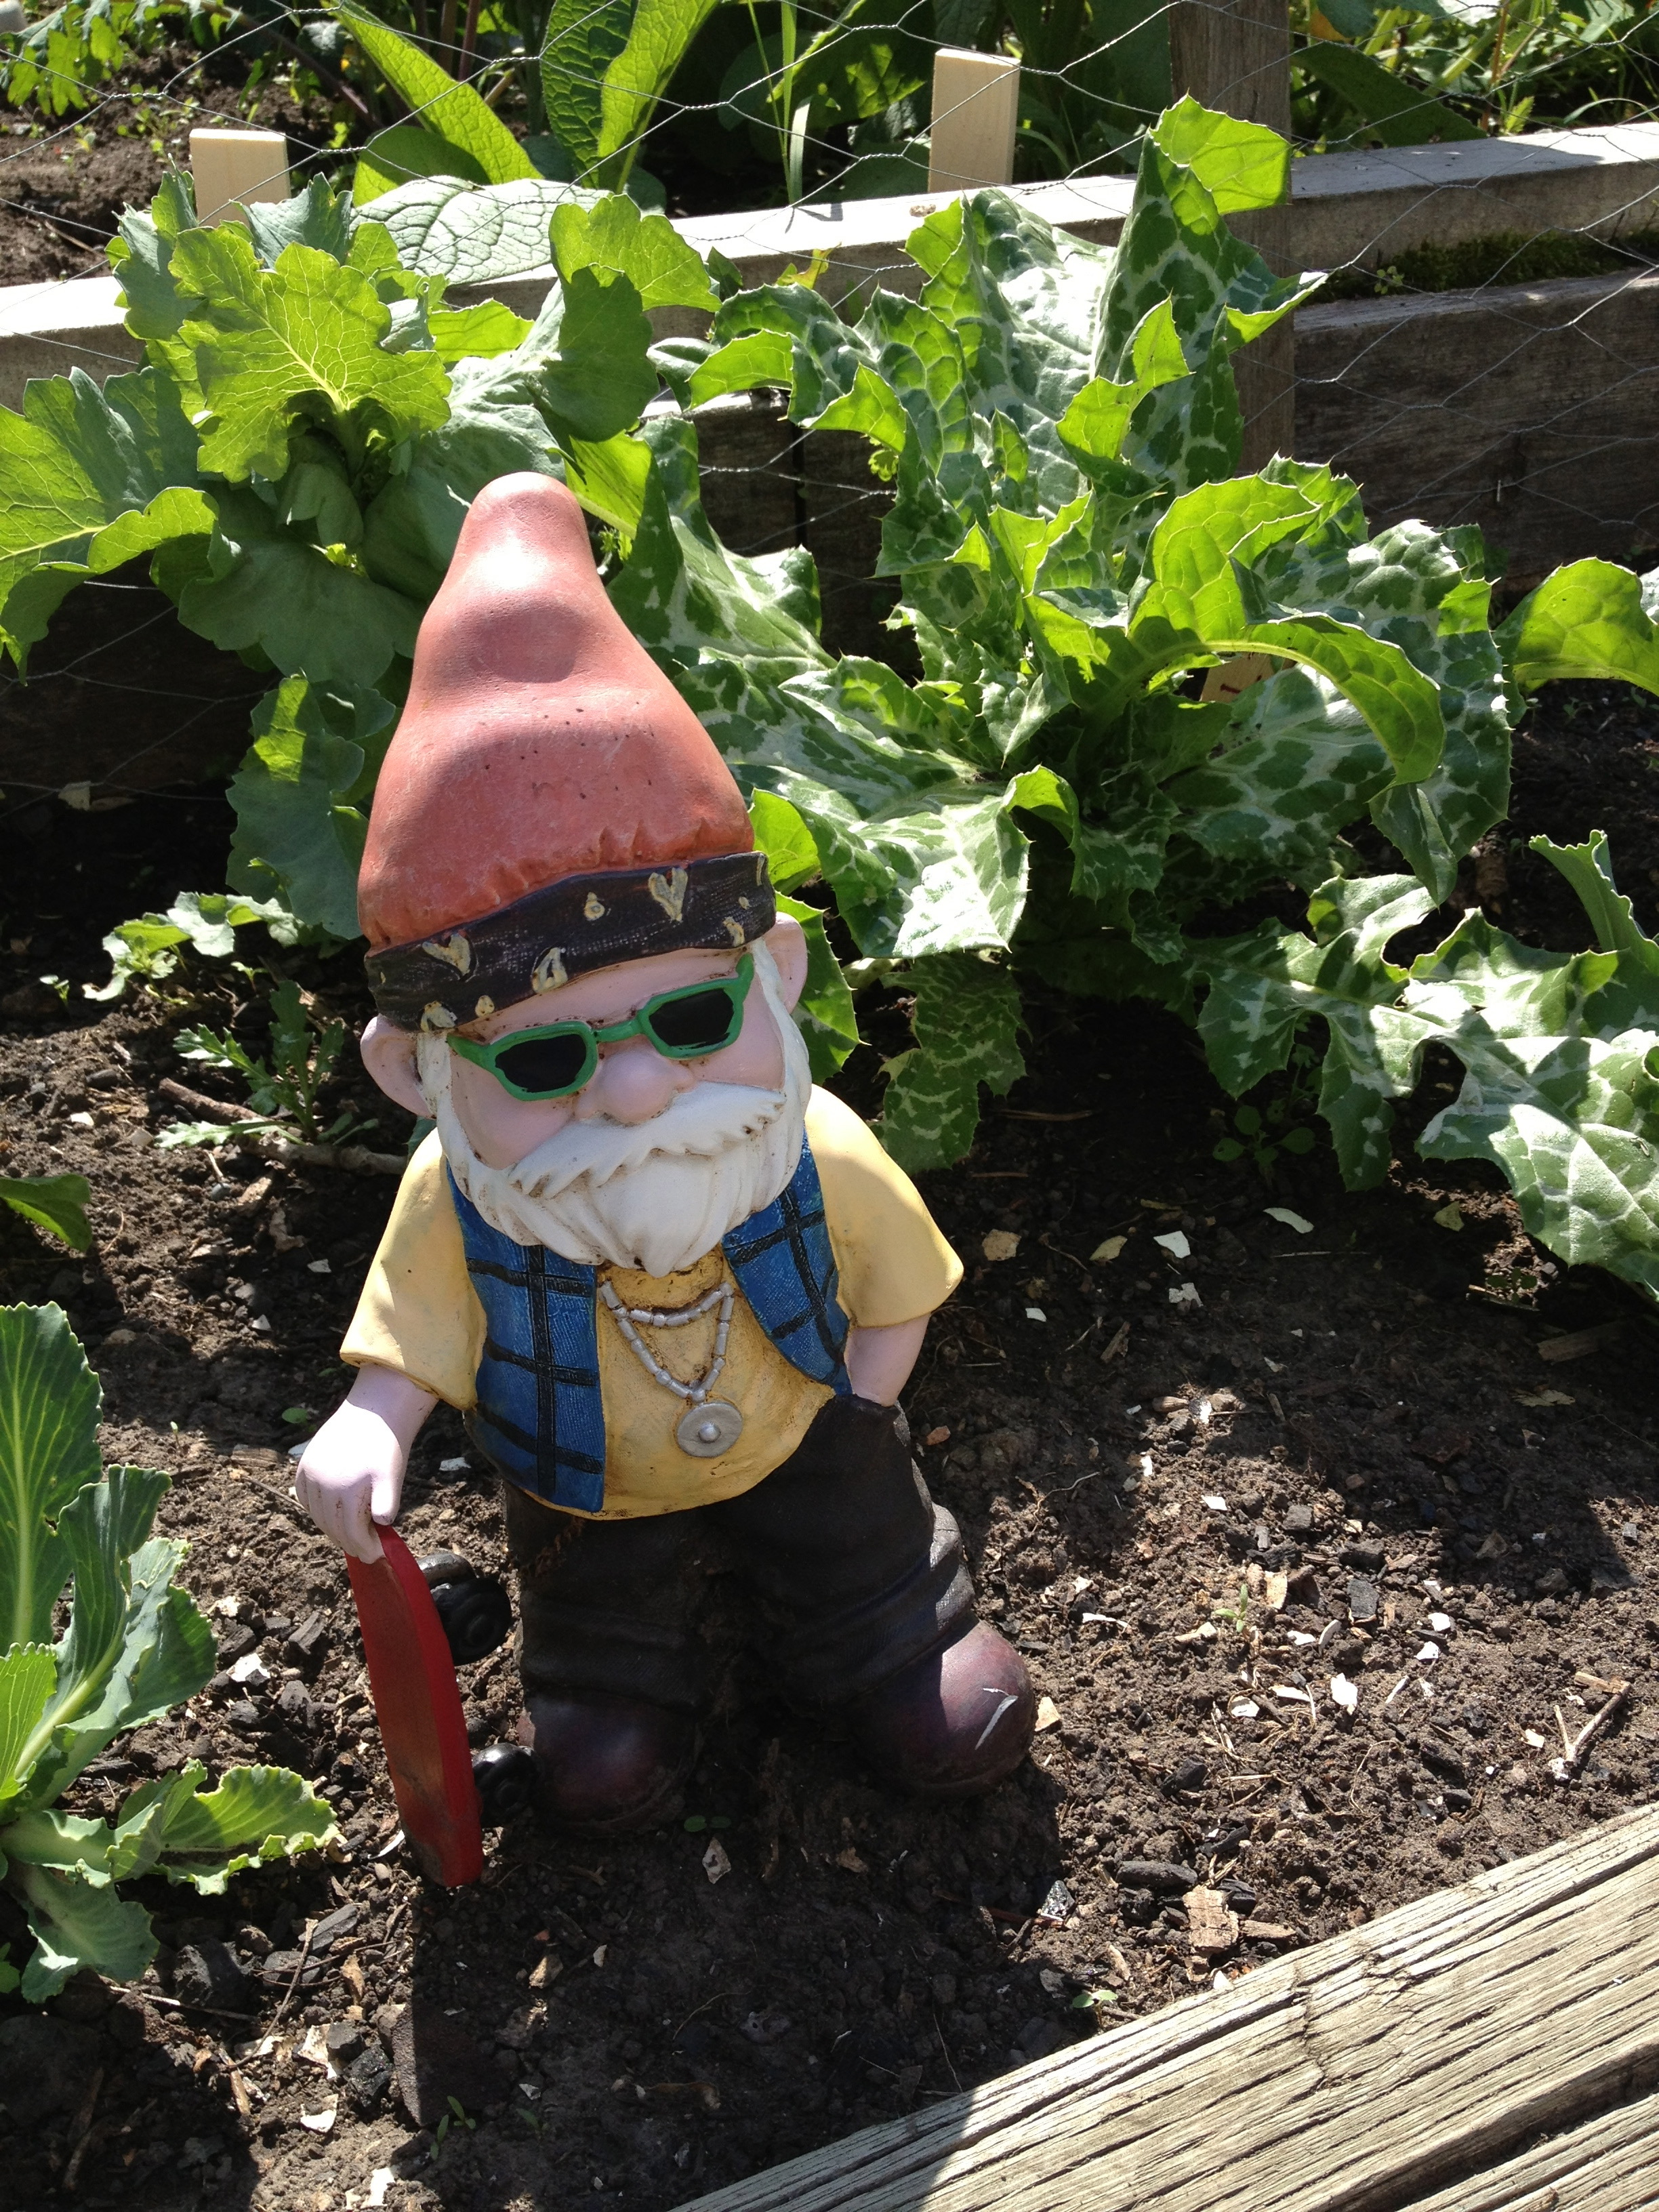 A happy gnome amongst his veg and milk thistles